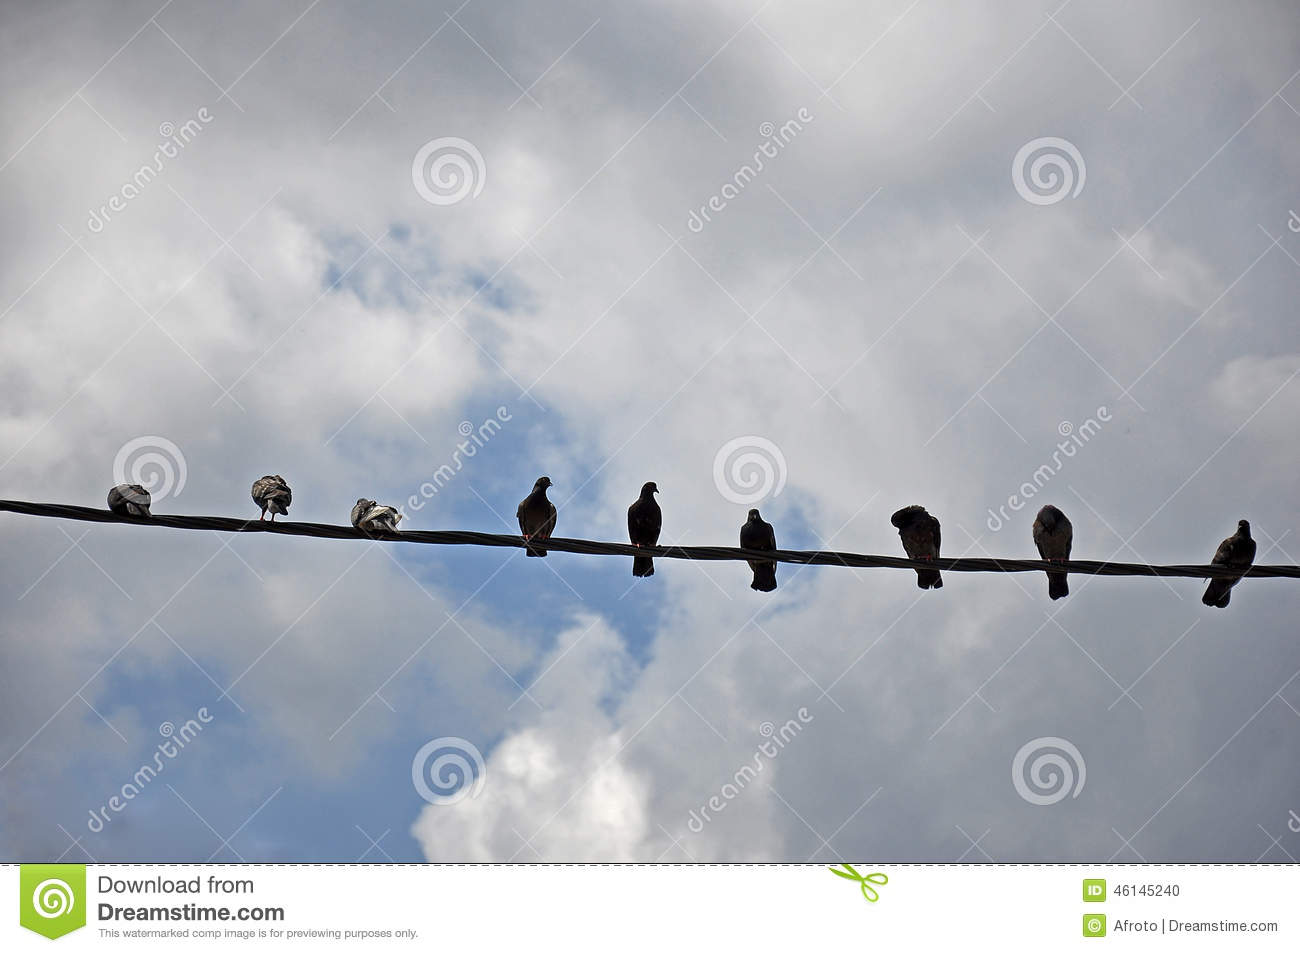 Birds on a wire stock photo. Image of spot, group, background - 46145240